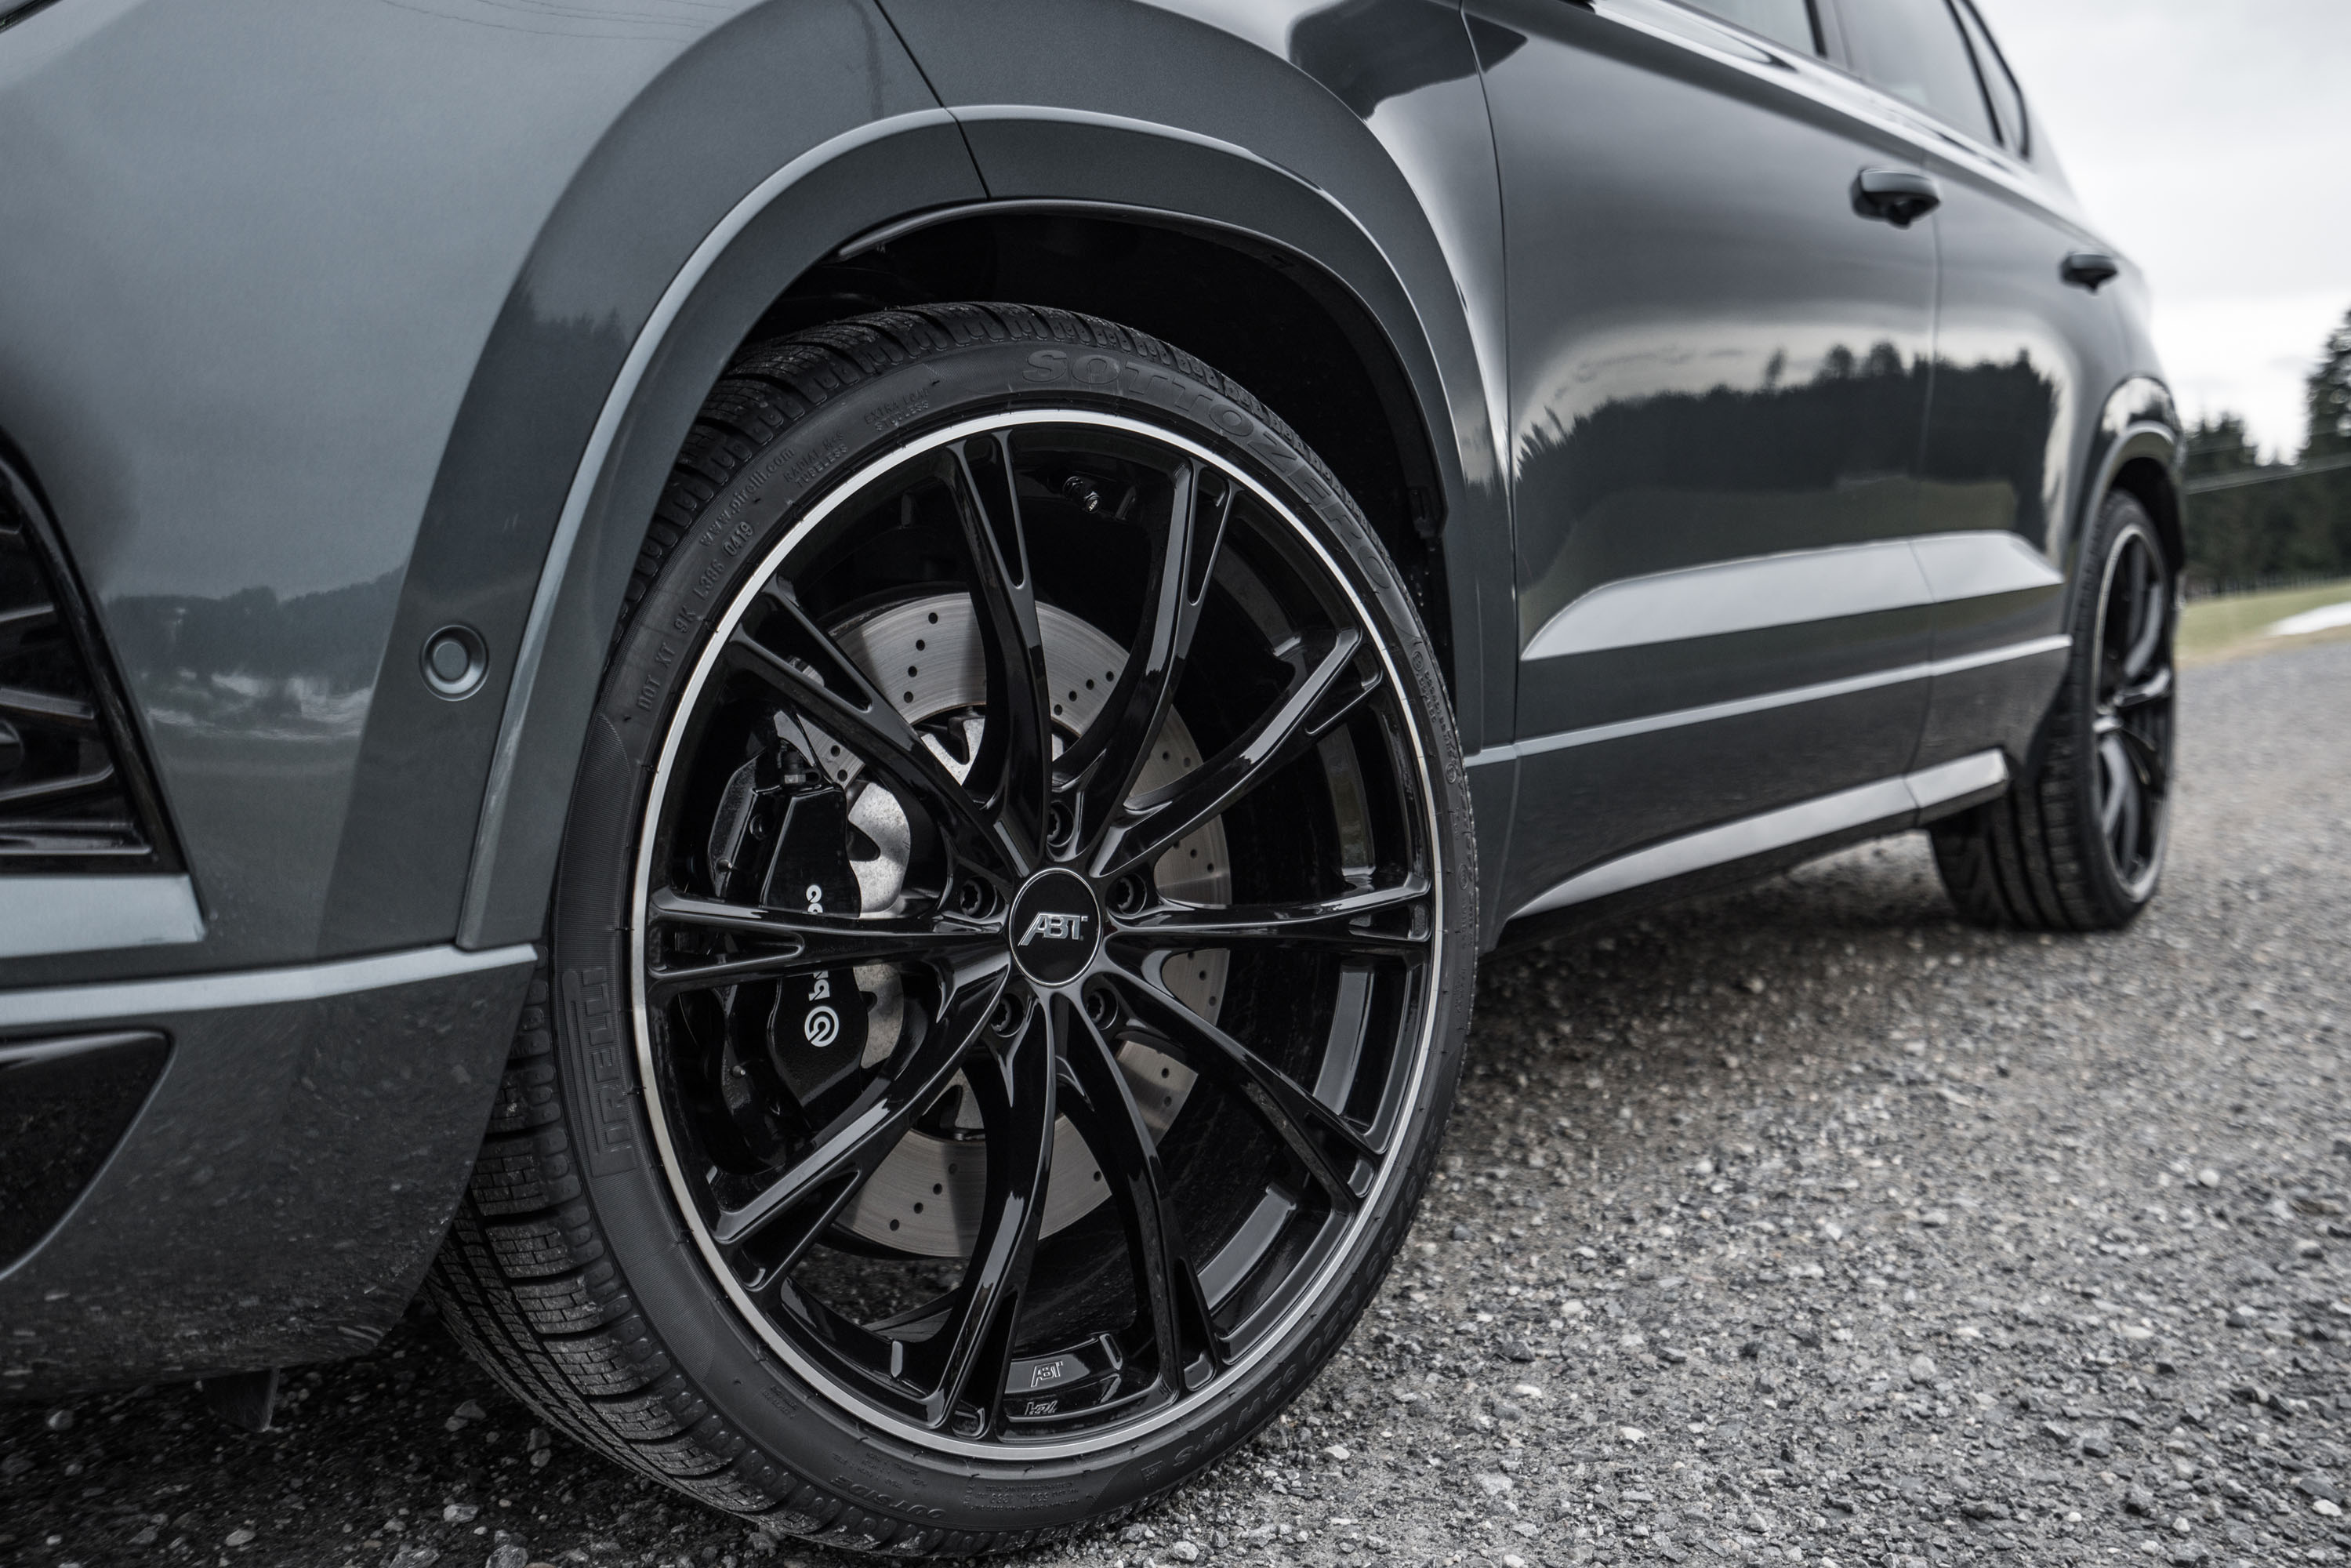 ABT Cupra Ateca Limited Edition photo #3